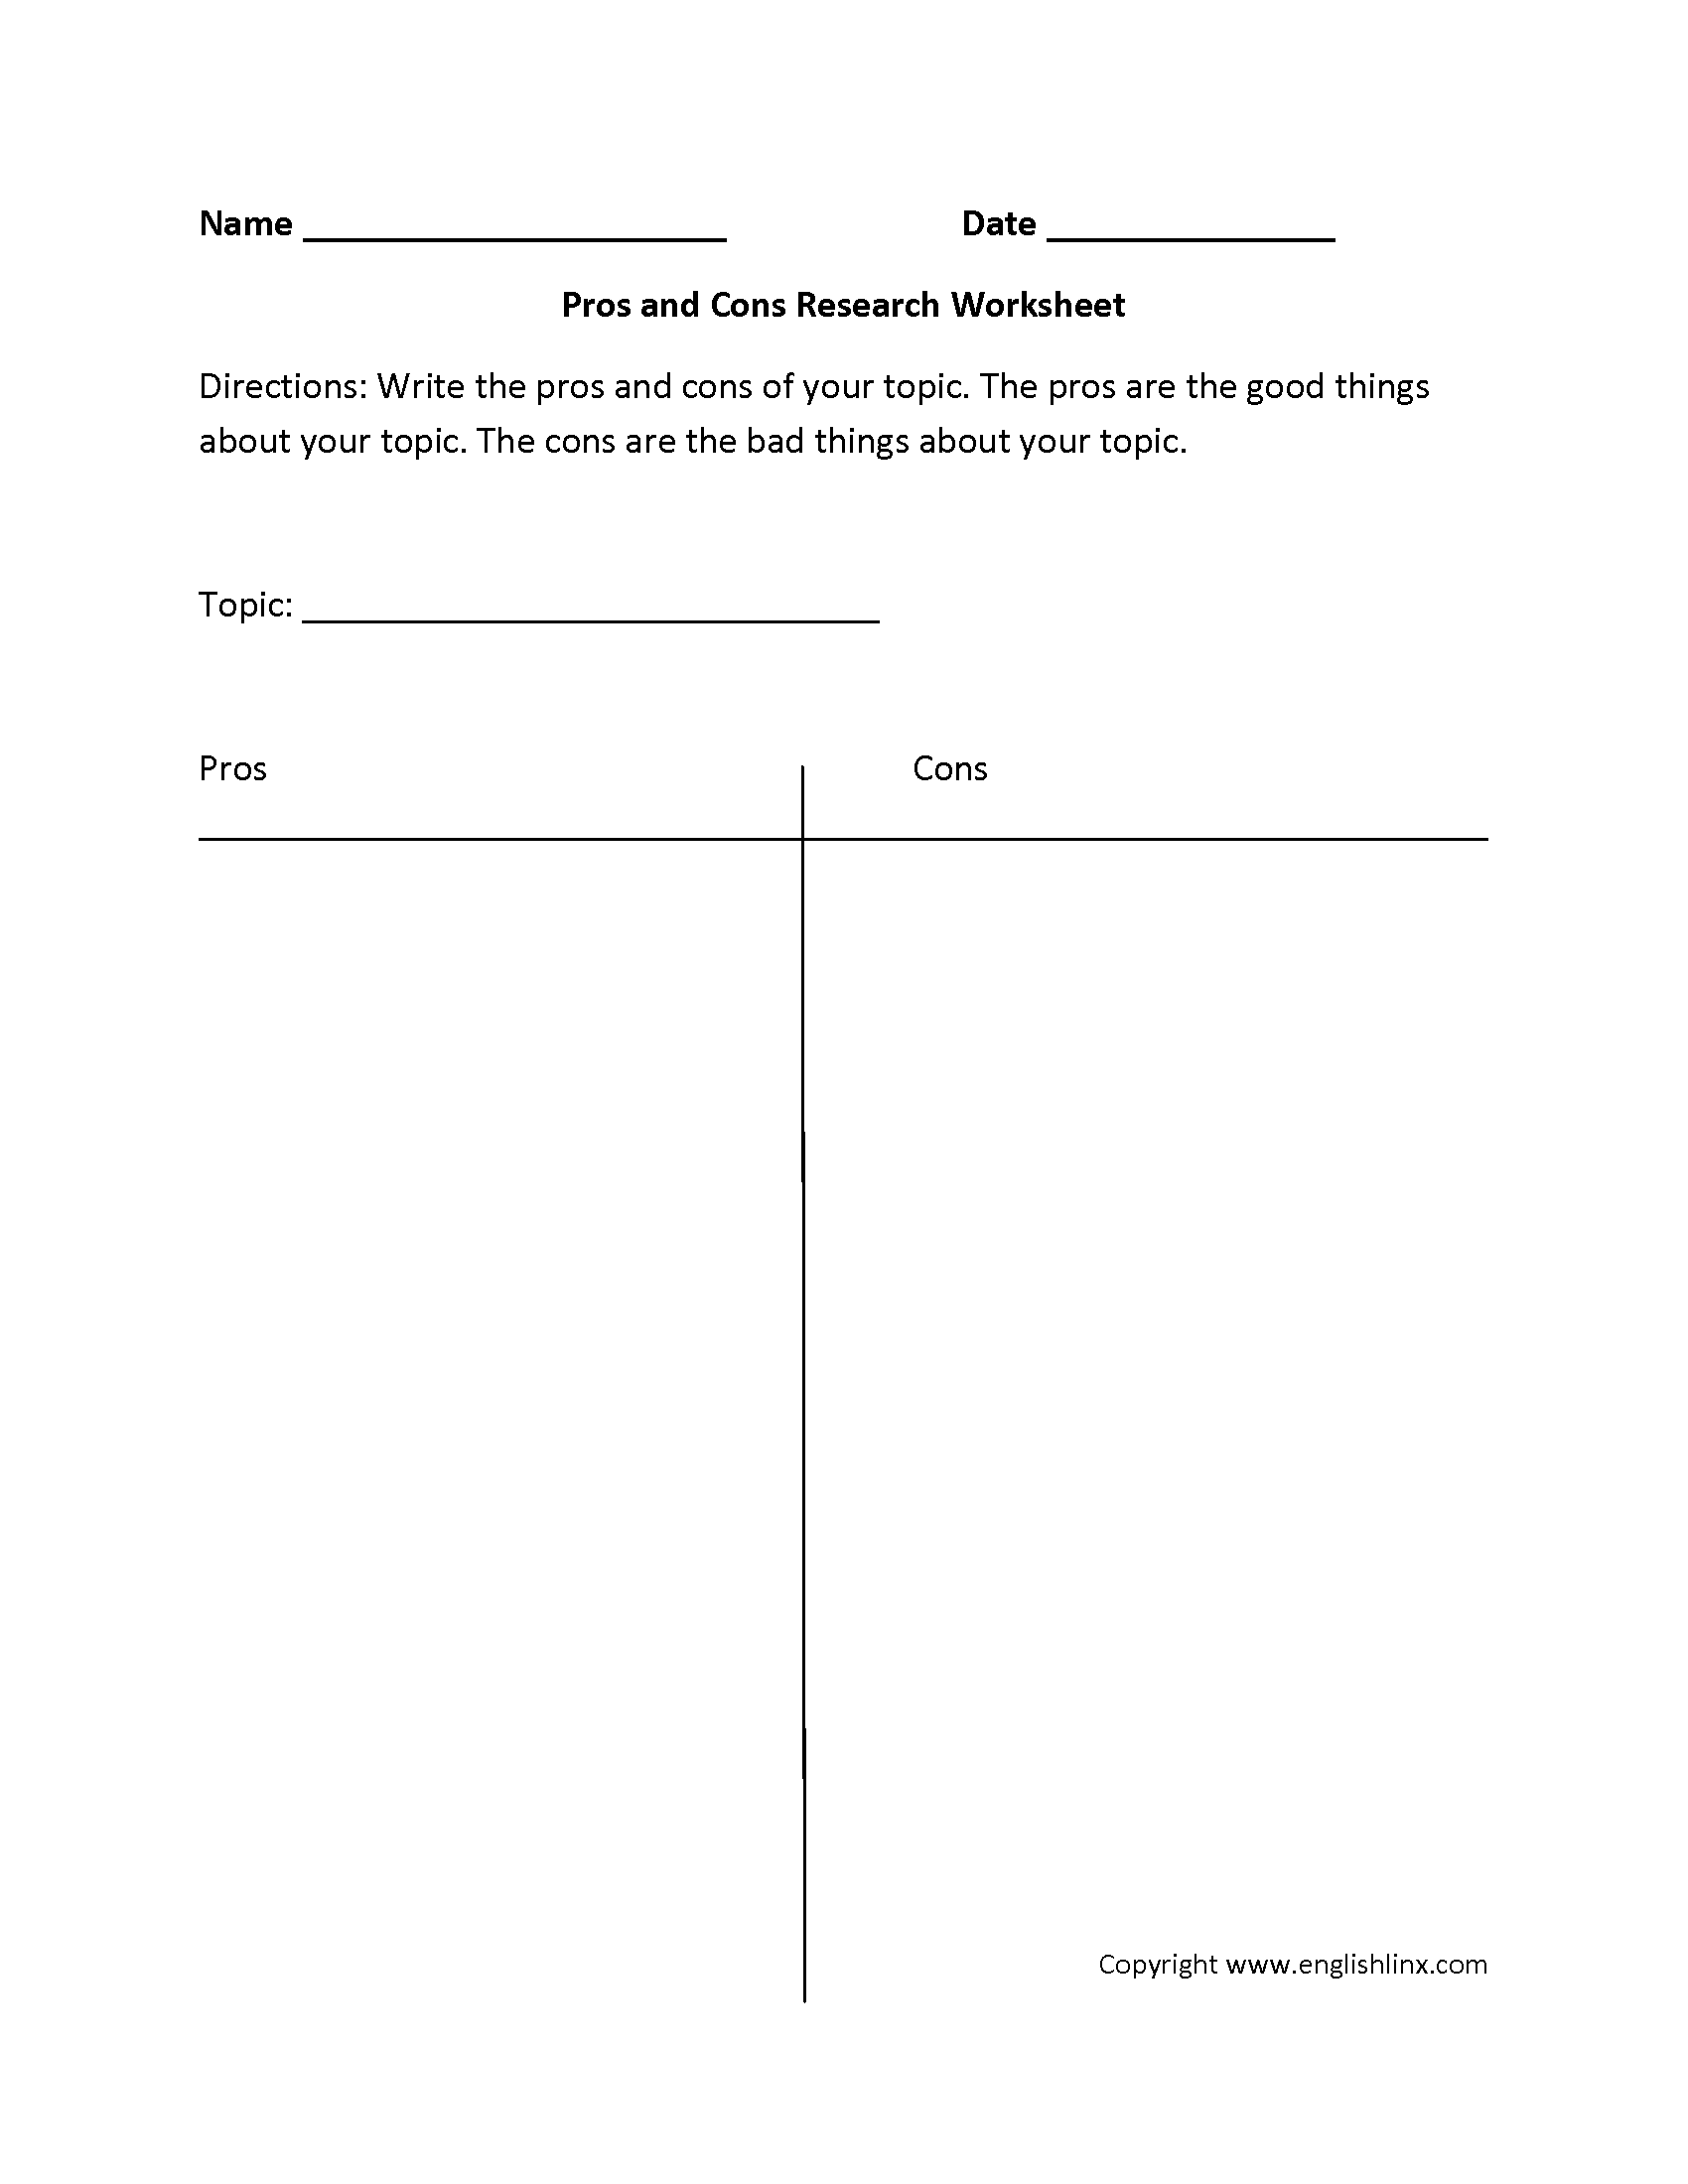 Pro Con Worksheet Demirediffusion